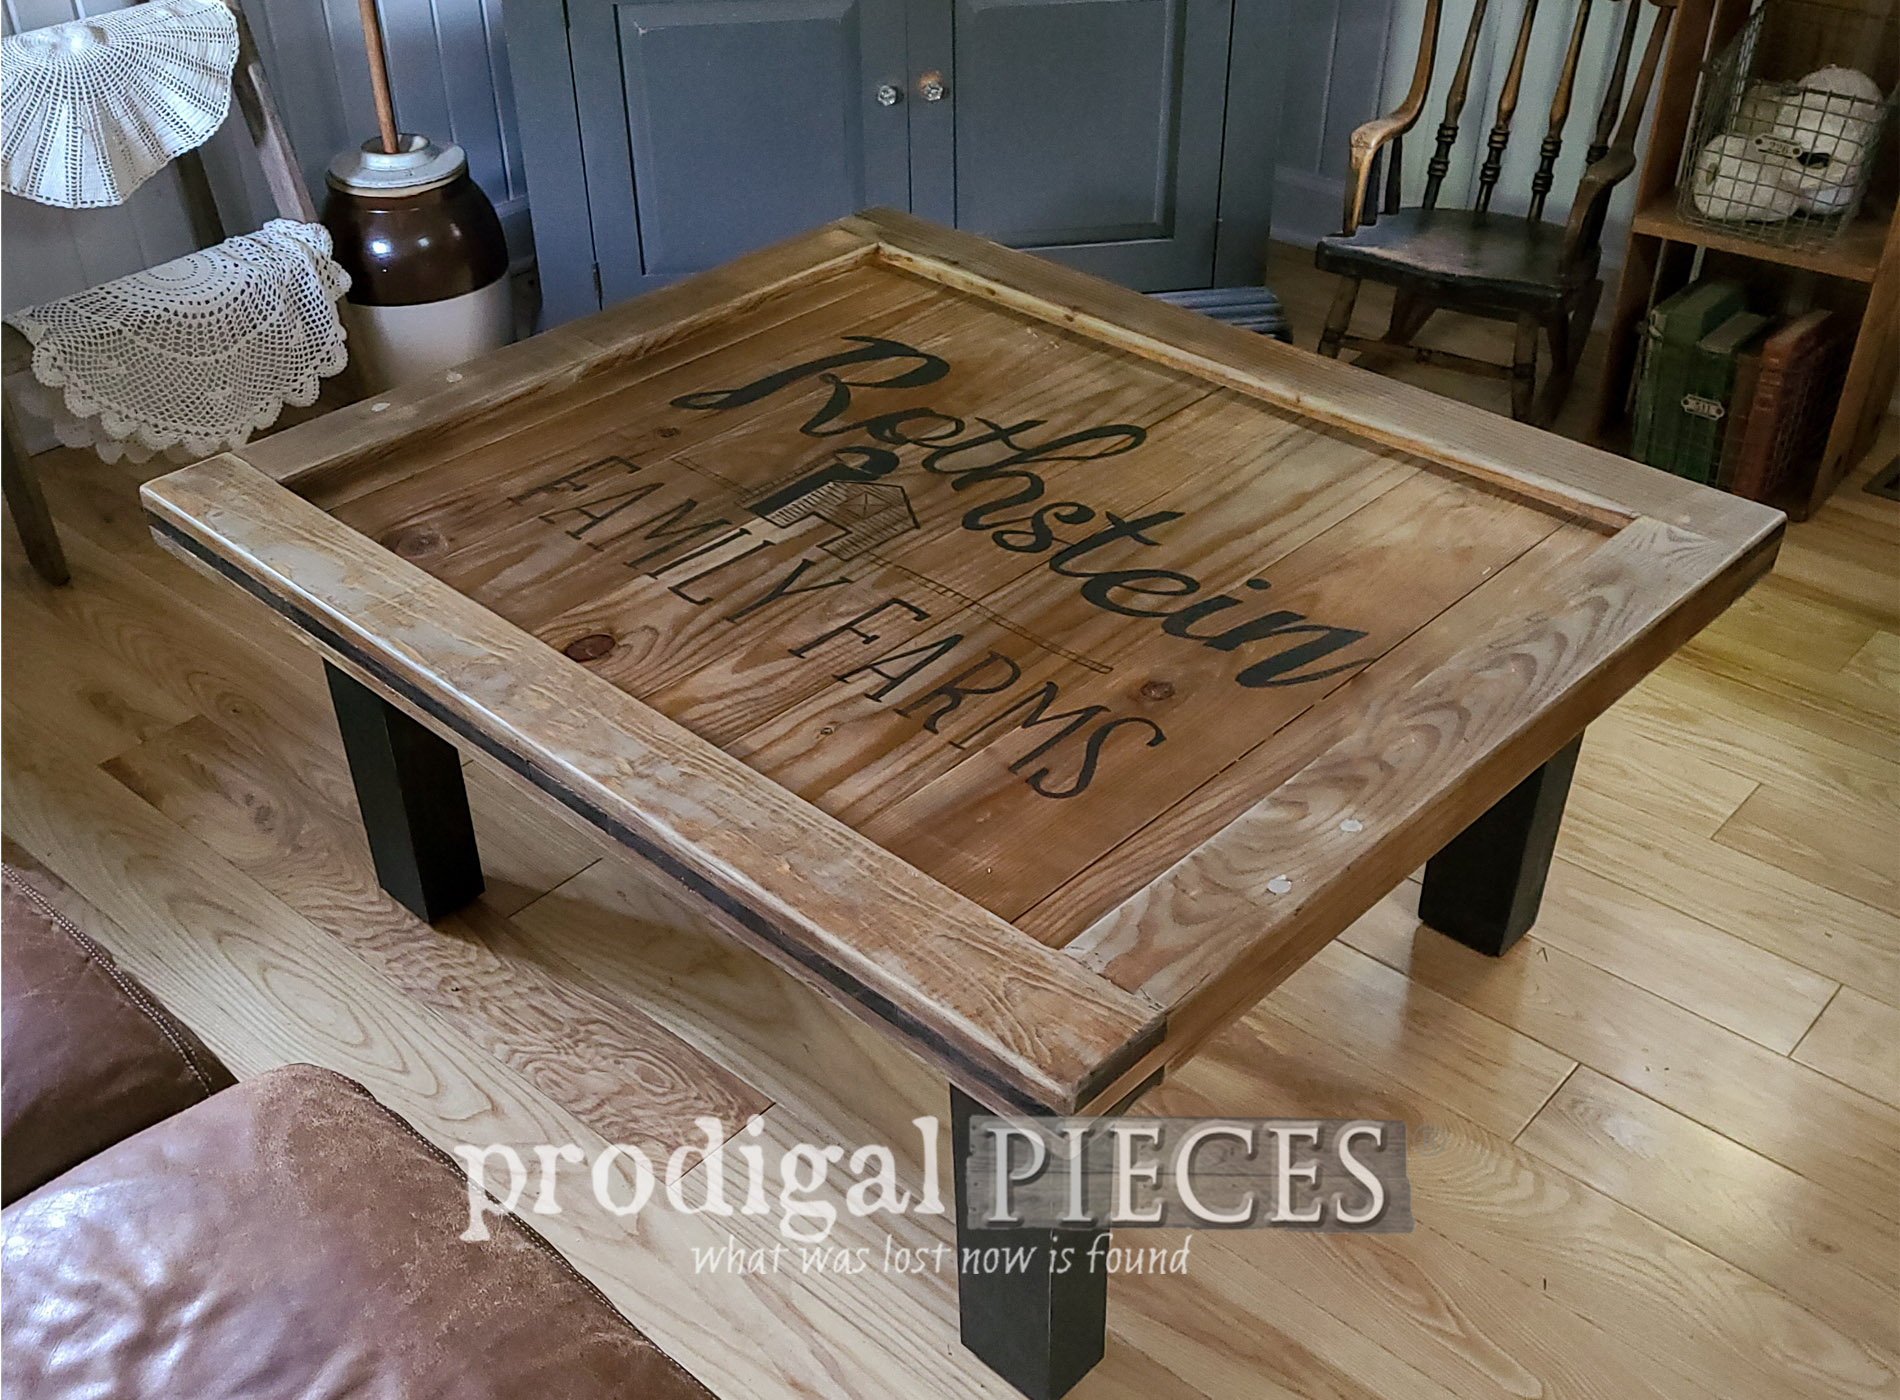 Featured Reclaimed Coffee Table Built by Larissa of Prodigal Pieces | prodigalpieces.com #prodigalpieces #farmhouse #furniture #build #woodworking #reclaimed #home #homedecor